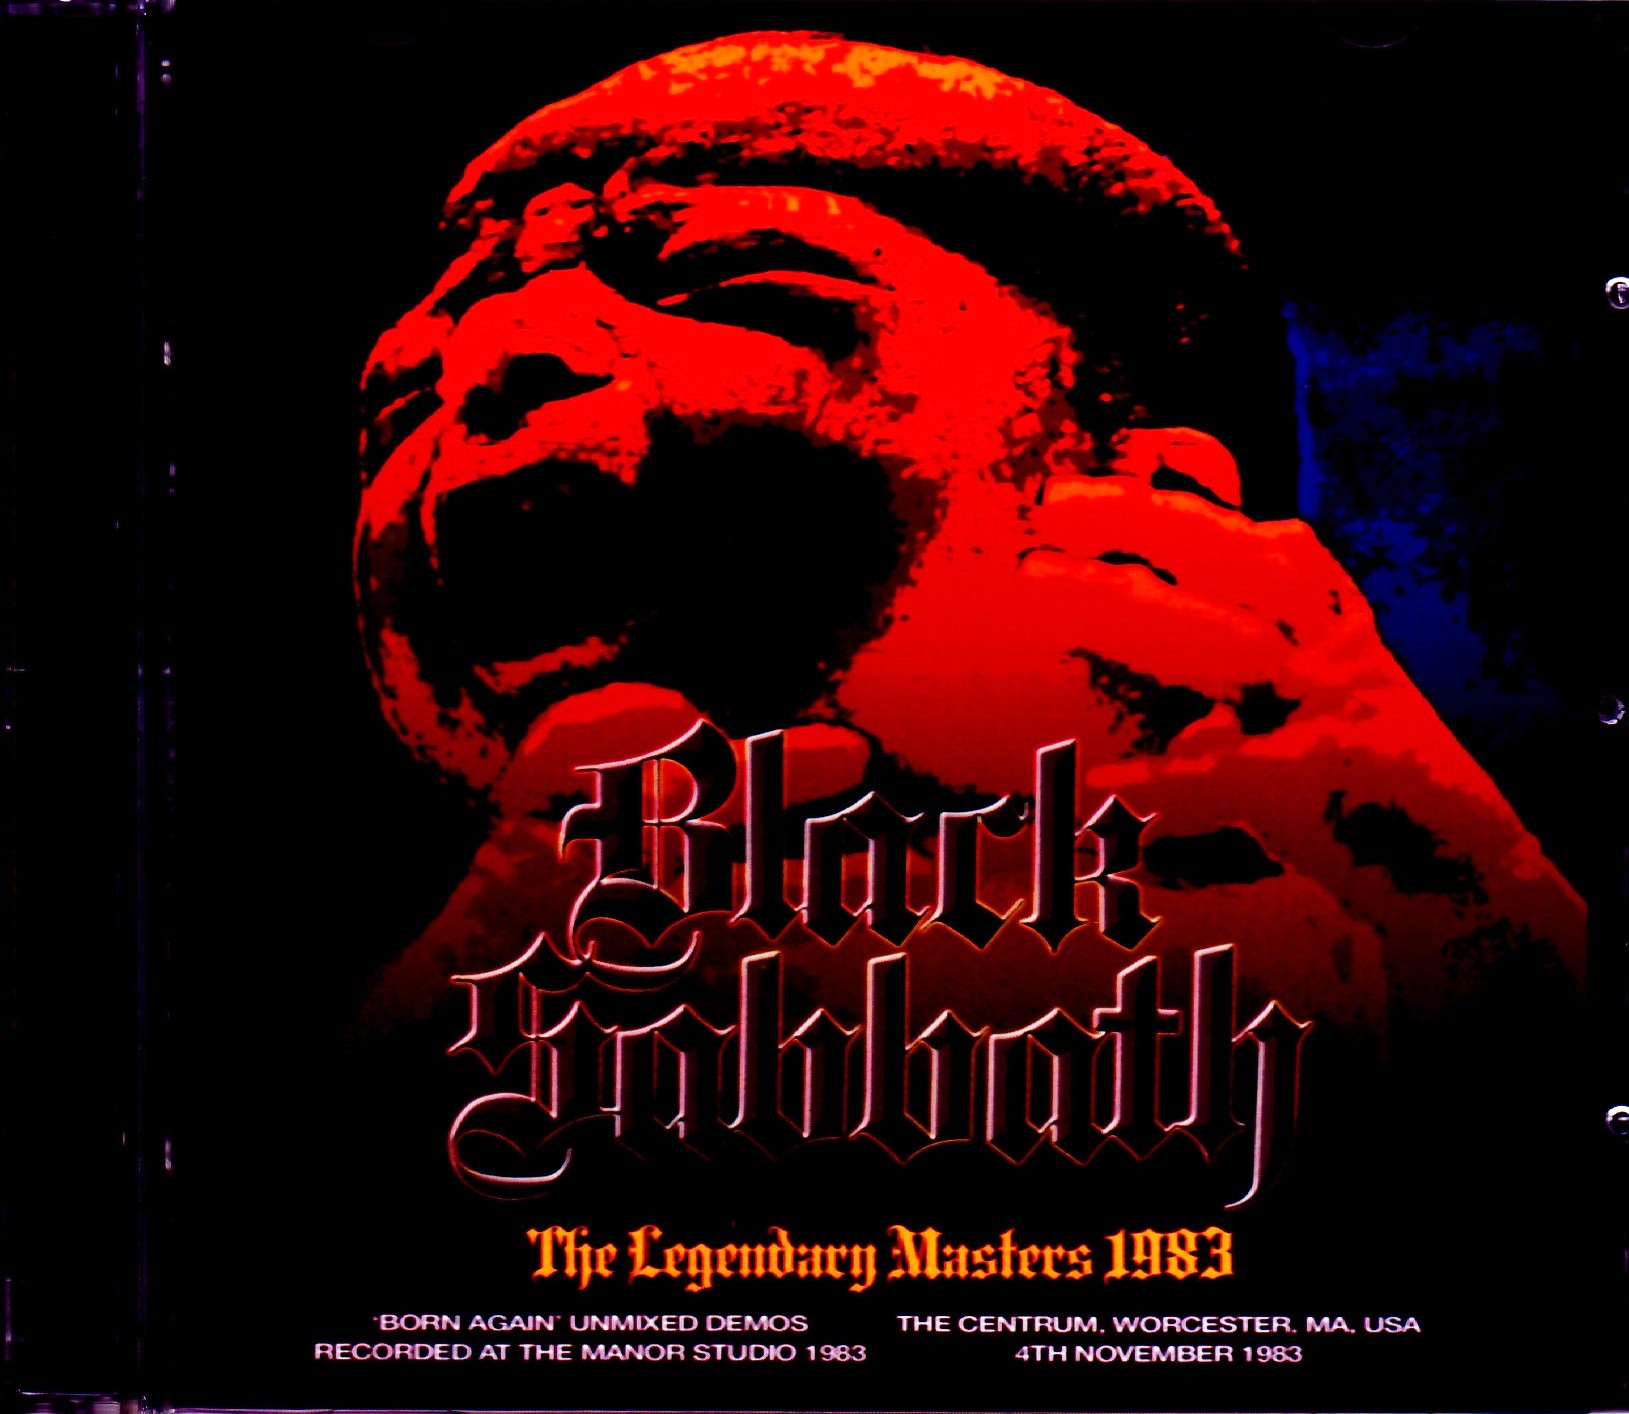 Black Sabbath ブラック・サバス/Born Again Unmixed Demos & more Upgrade